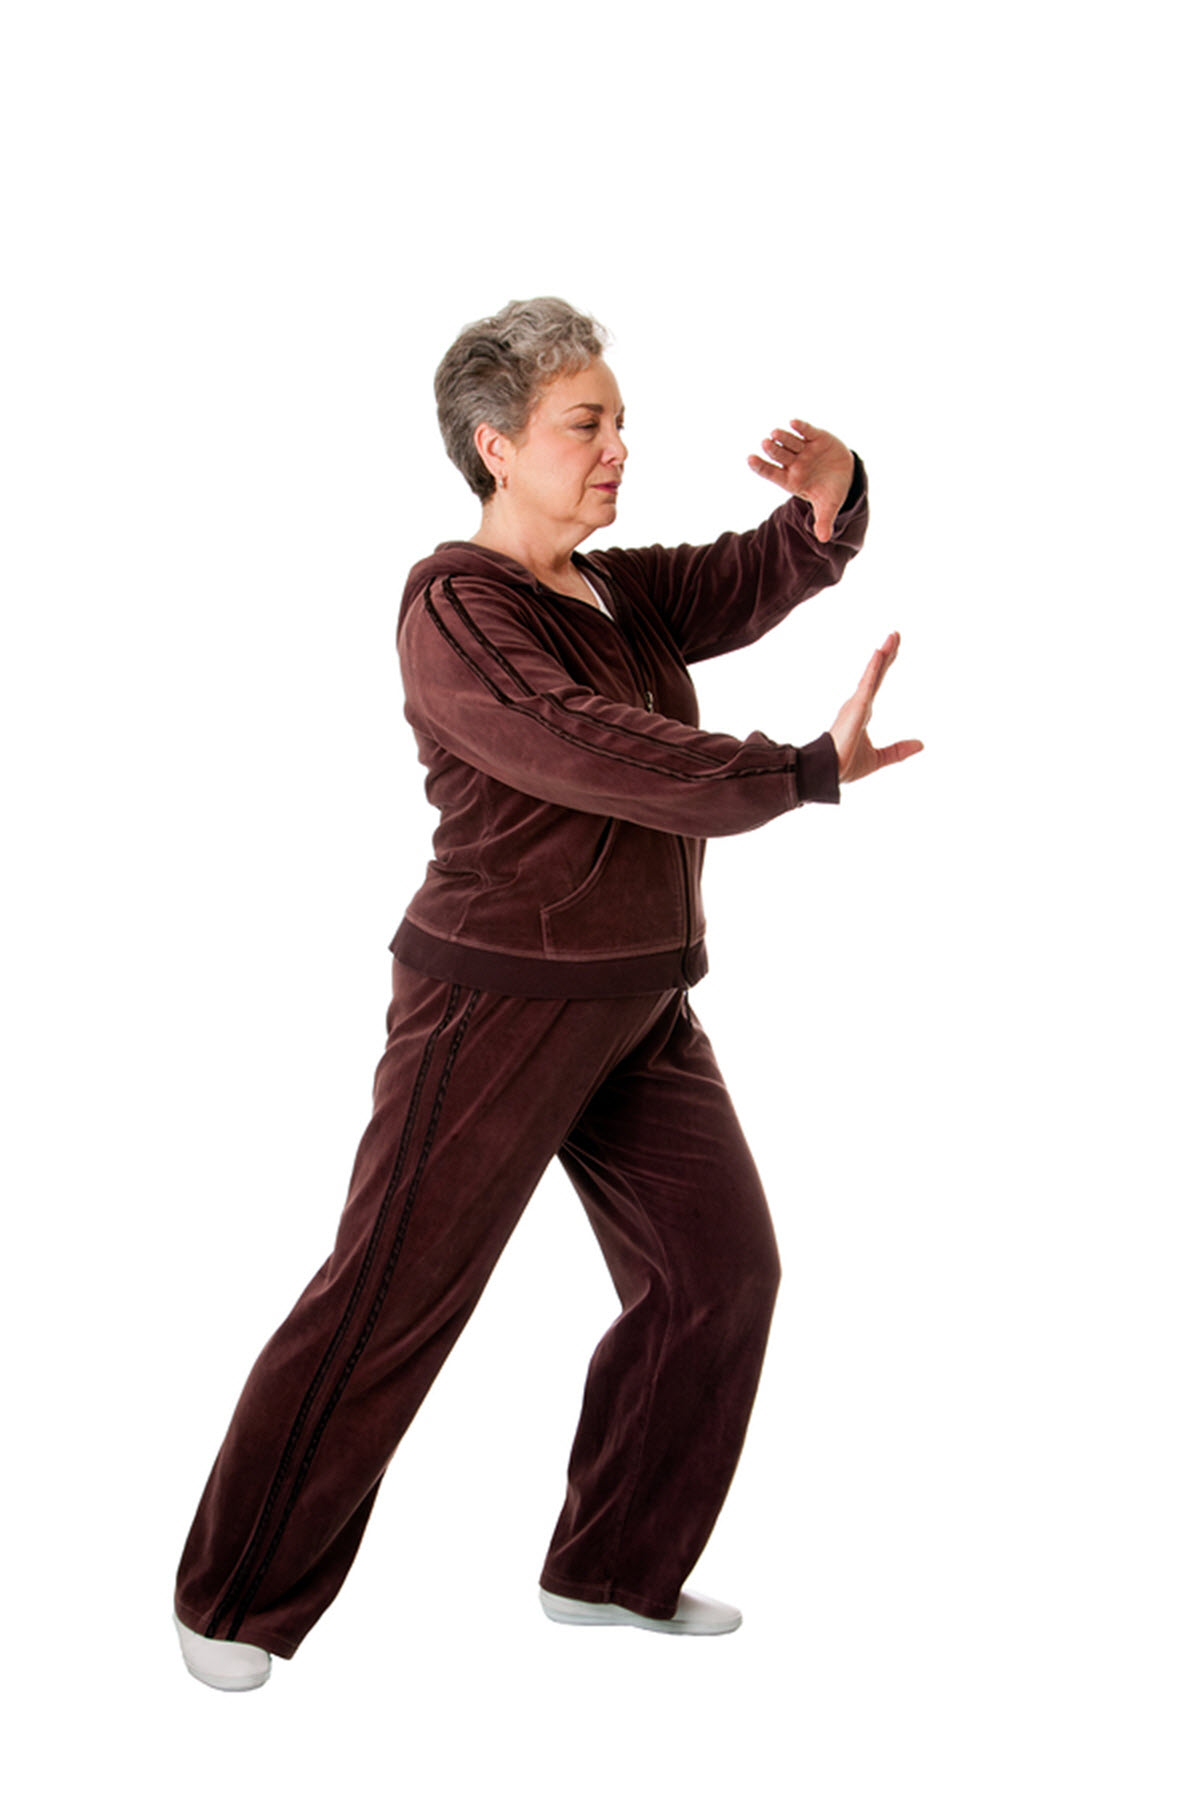 Home Care Services in Sunnyside WA: Exercise and Your Senior's Balance